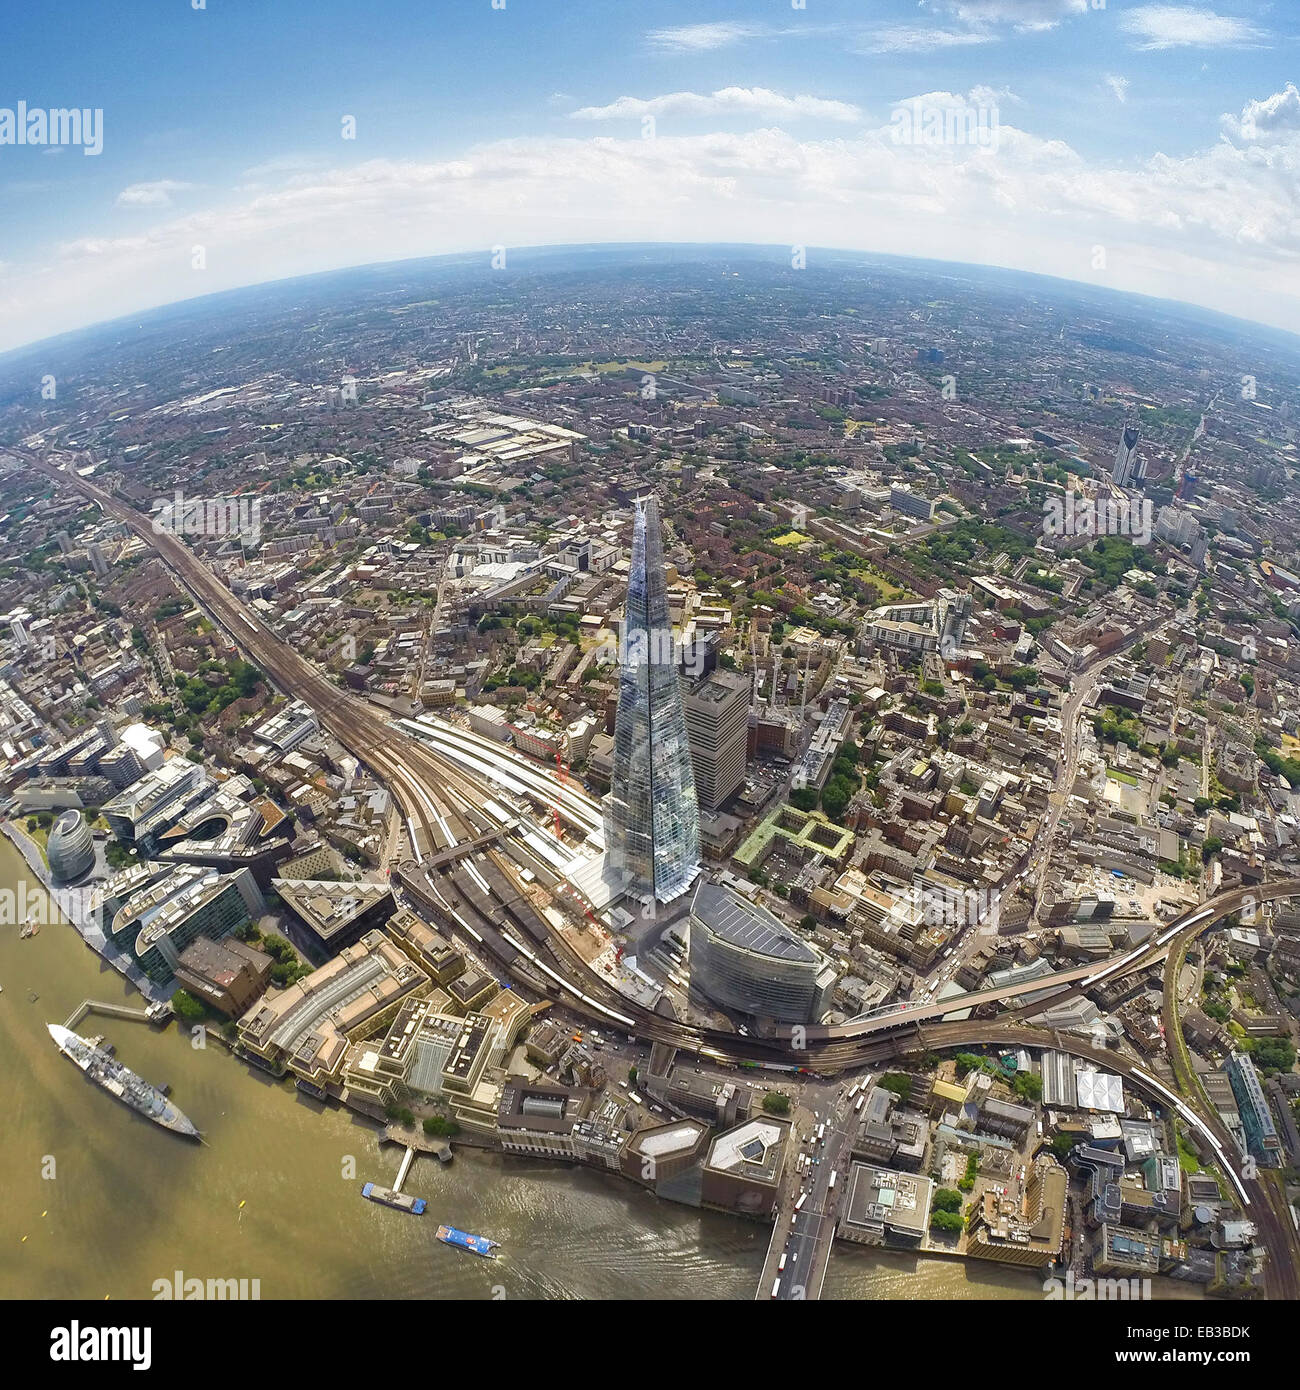 UK, England, Aerial view of Shard in London - Stock Image